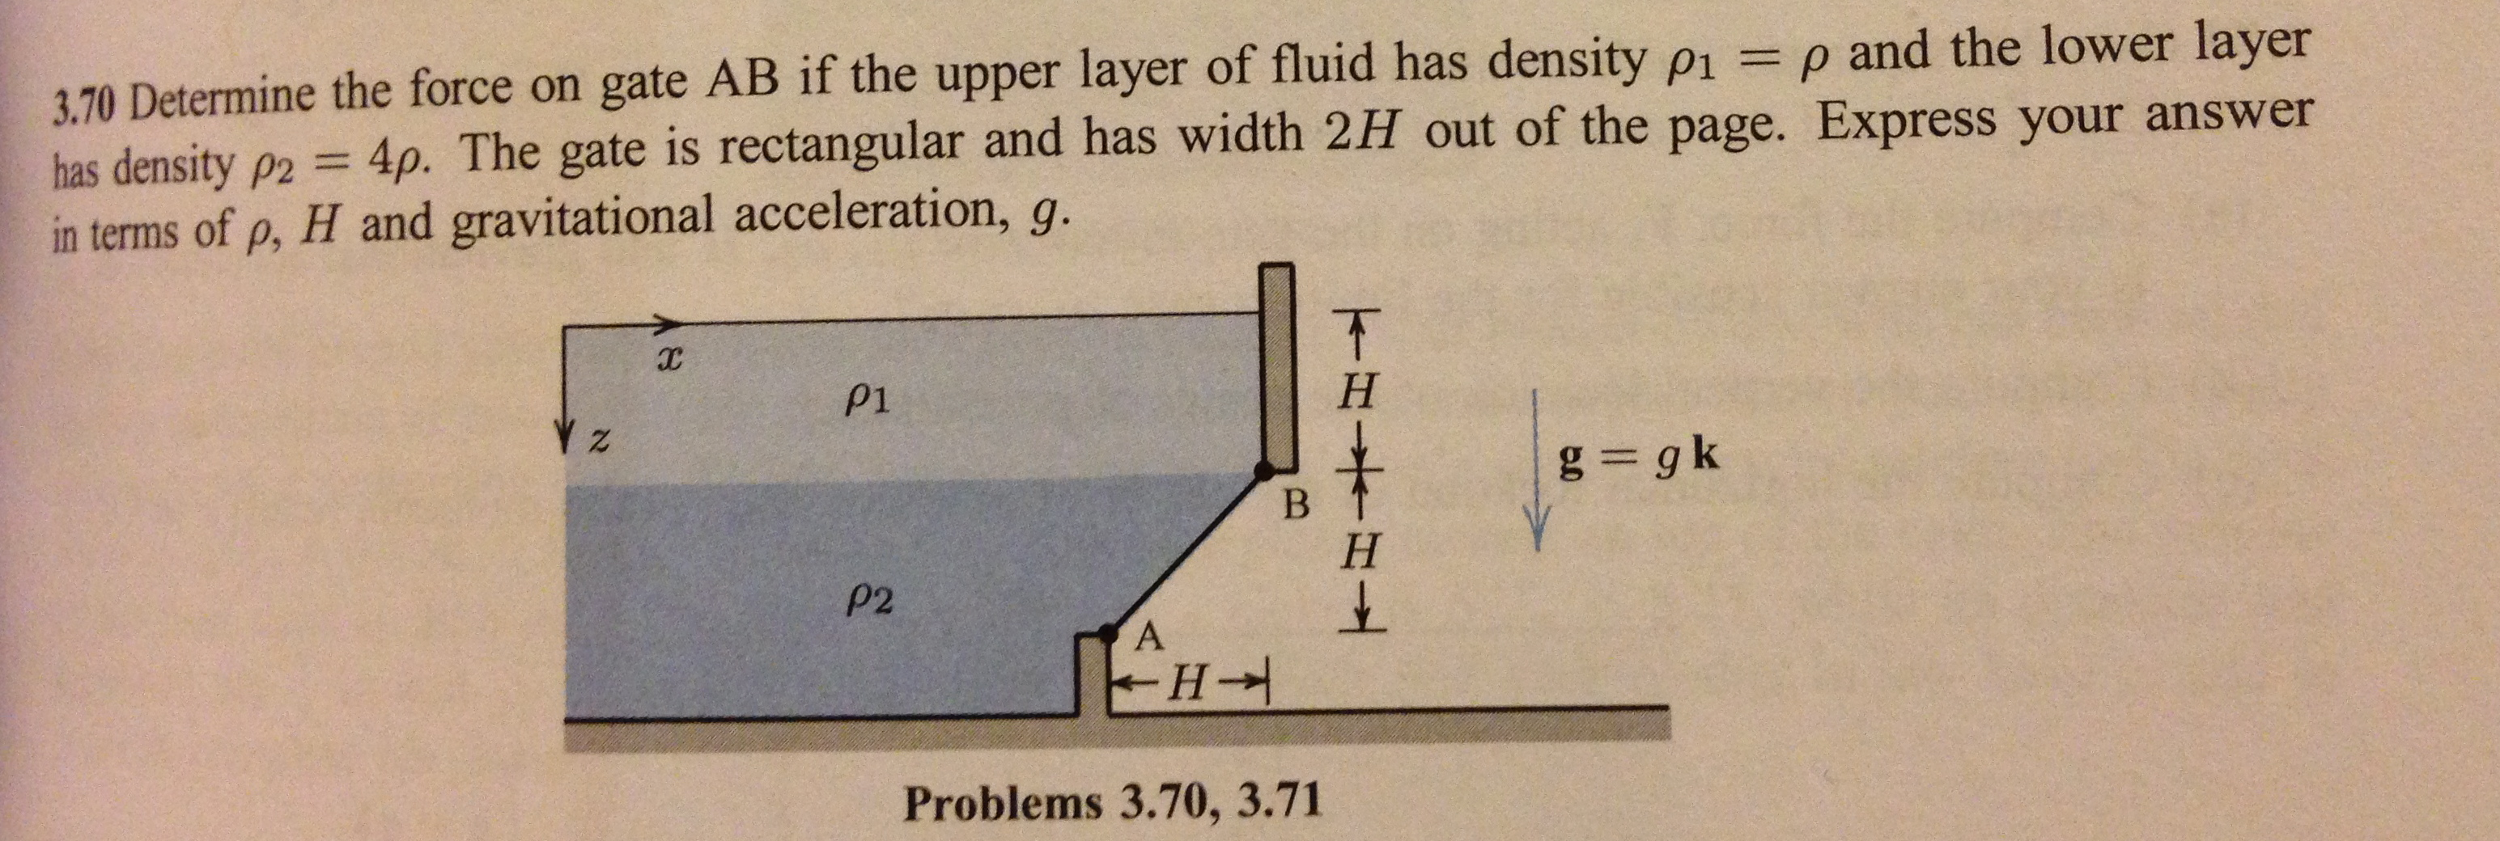 Determine the force on gate AB if the upper layer